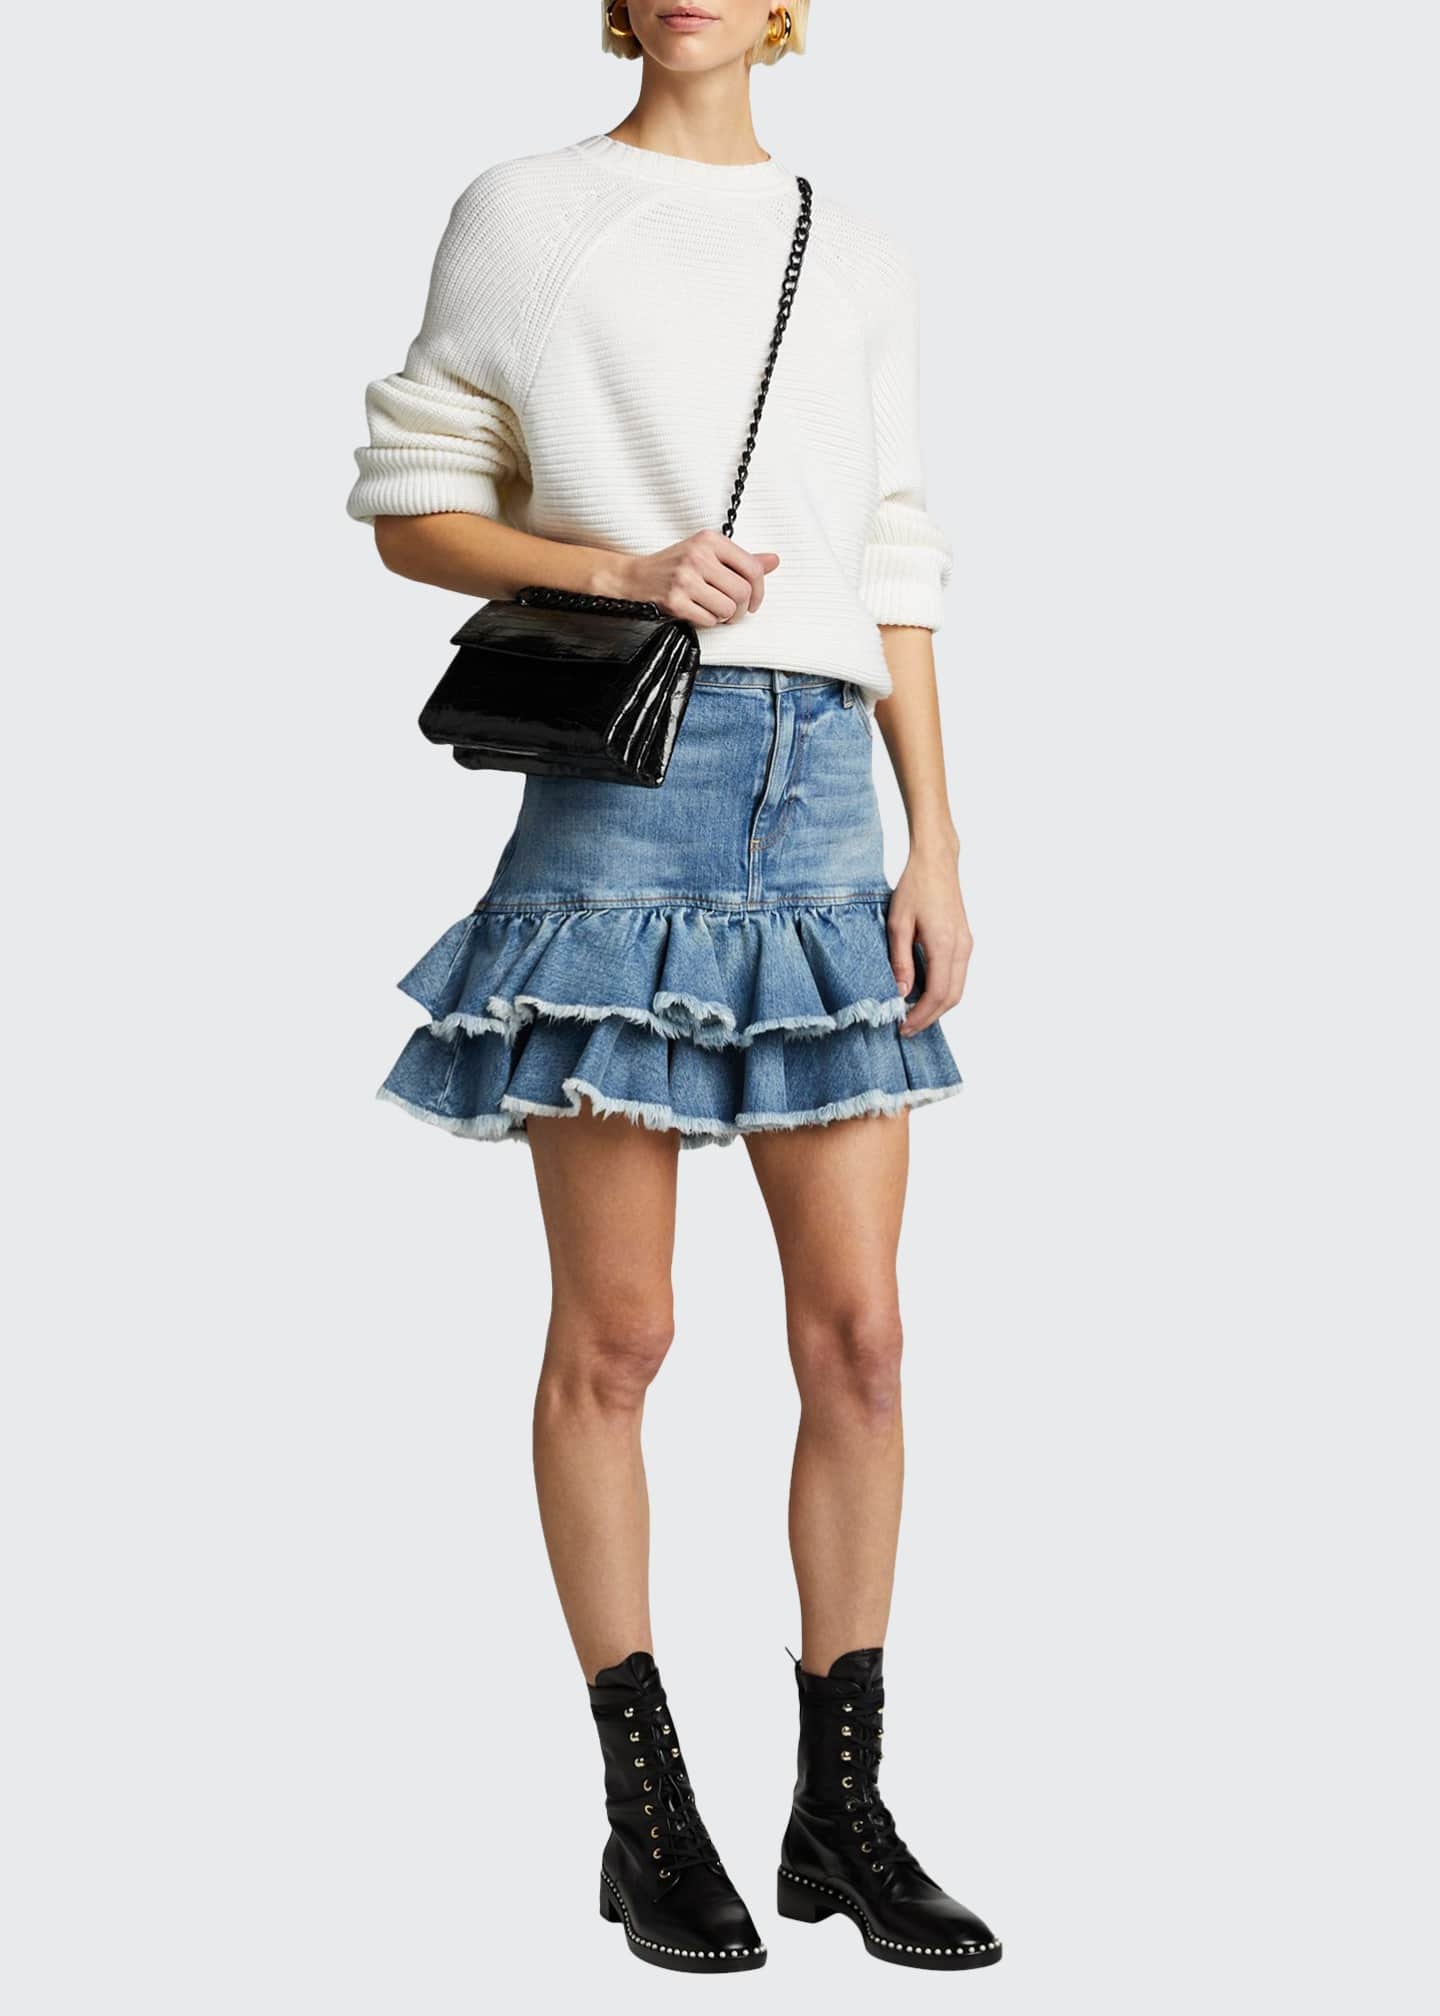 ALICE + OLIVIA JEANS Good High-Rise Ruffle-Hem Skirt